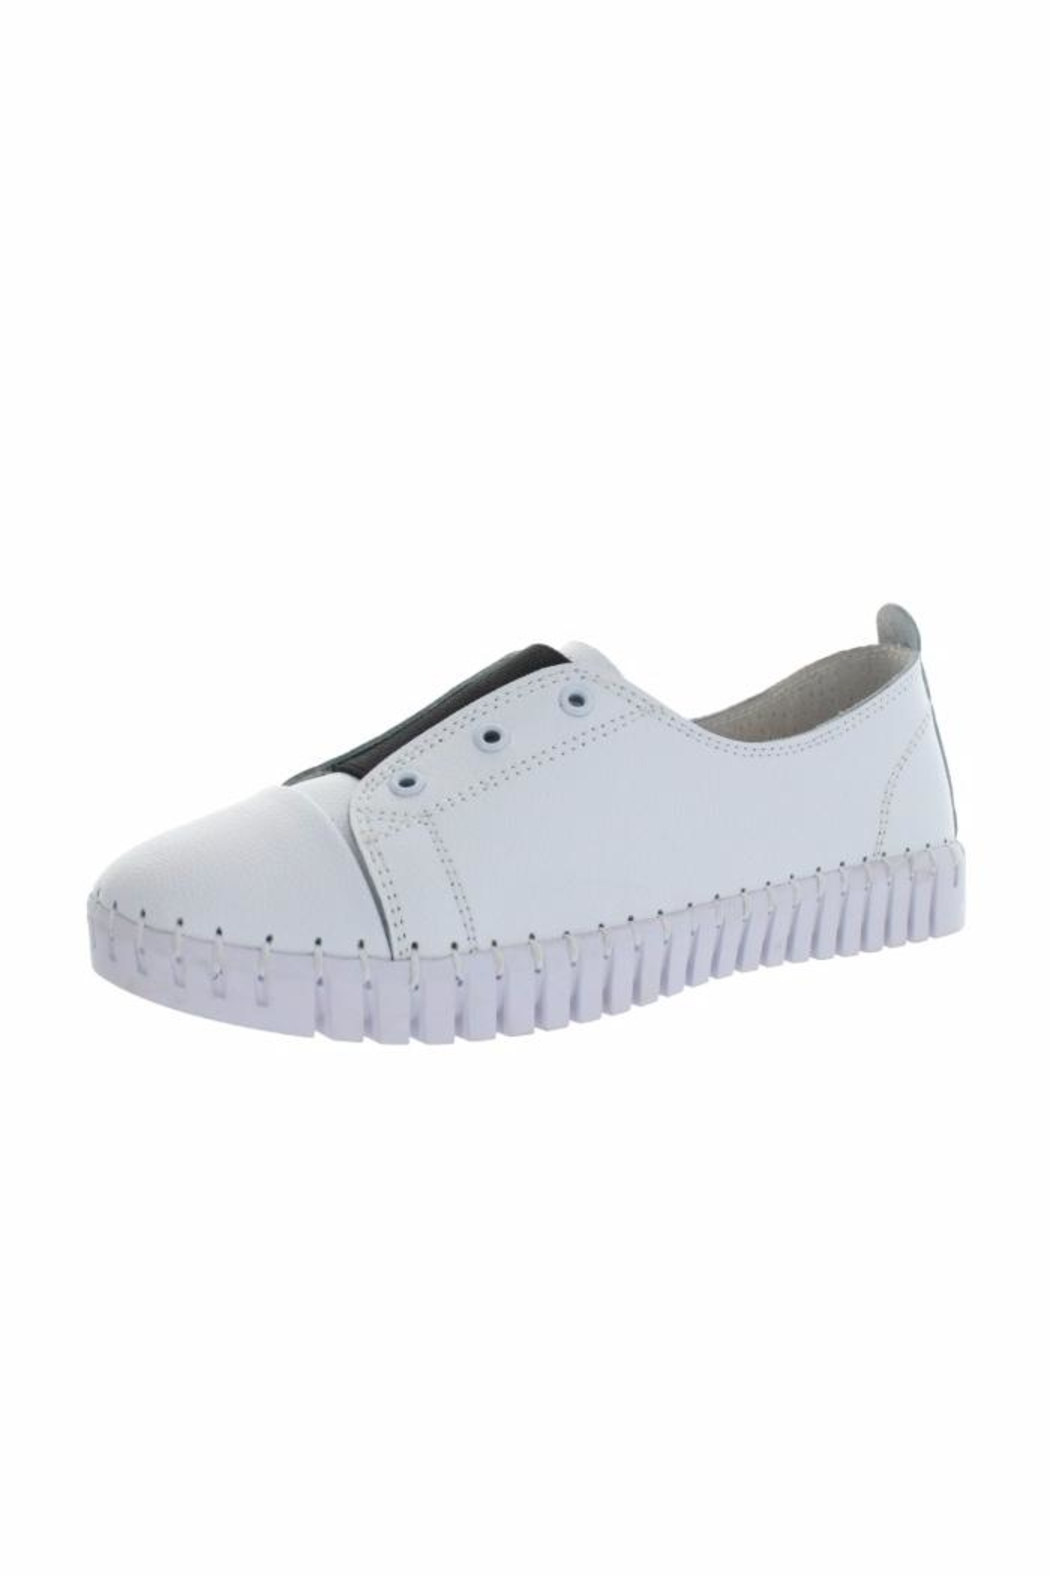 Bernie Mev White Sneaker - Front Cropped Image